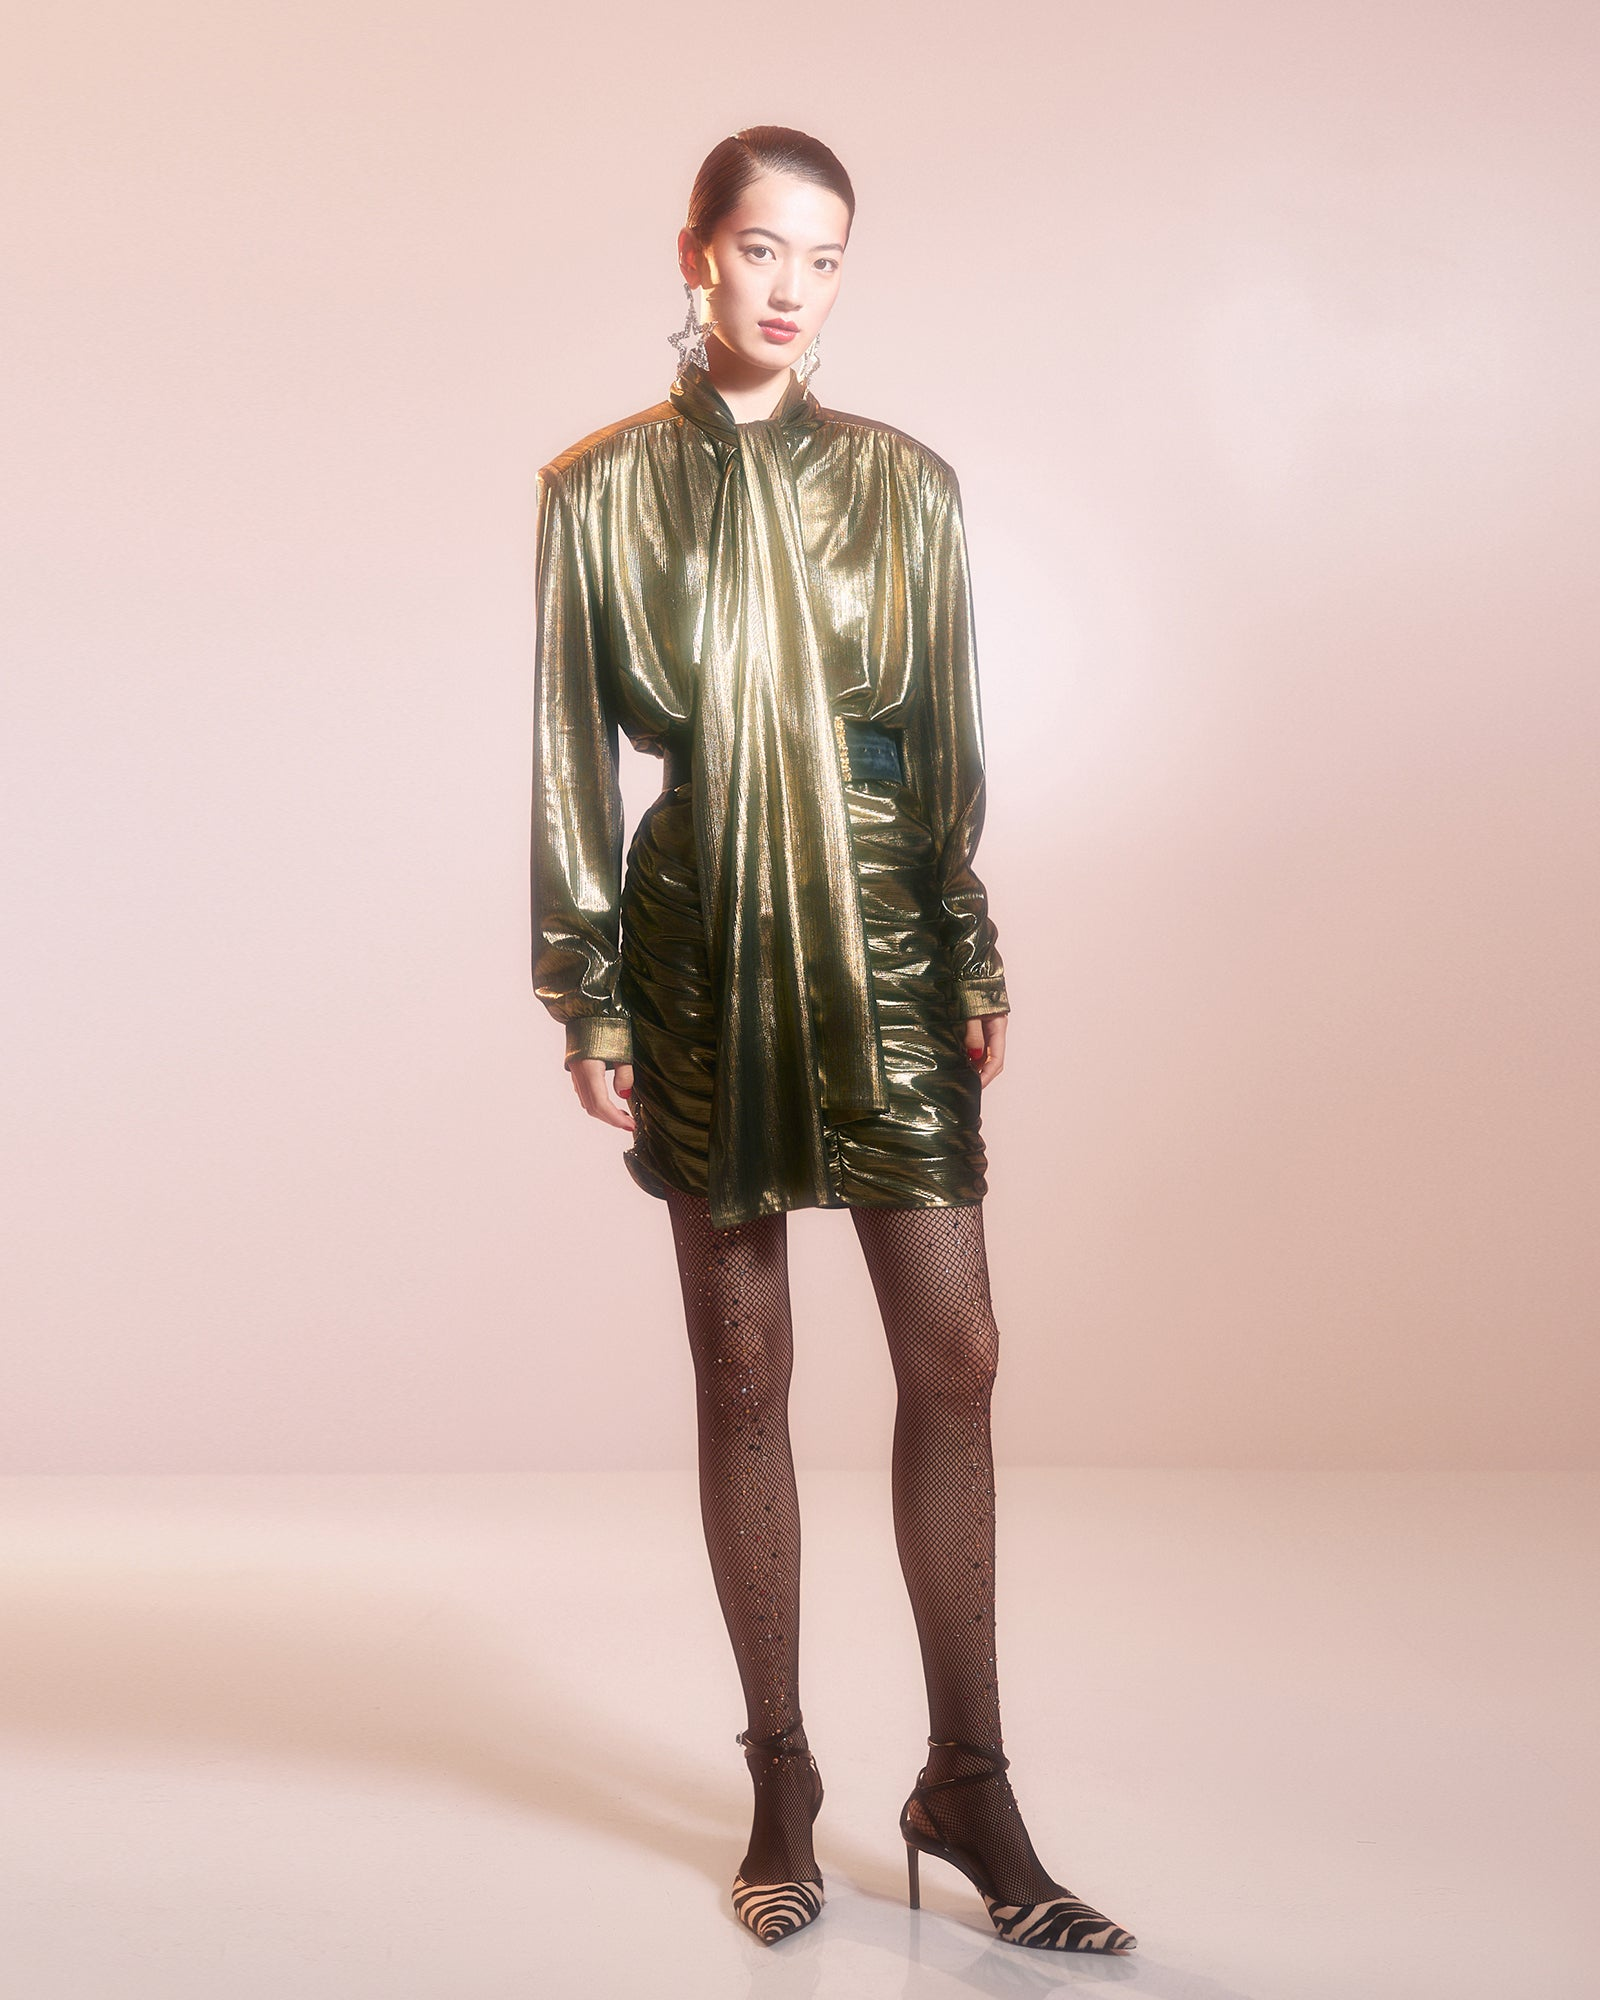 Gold Lame 80s Style Dress